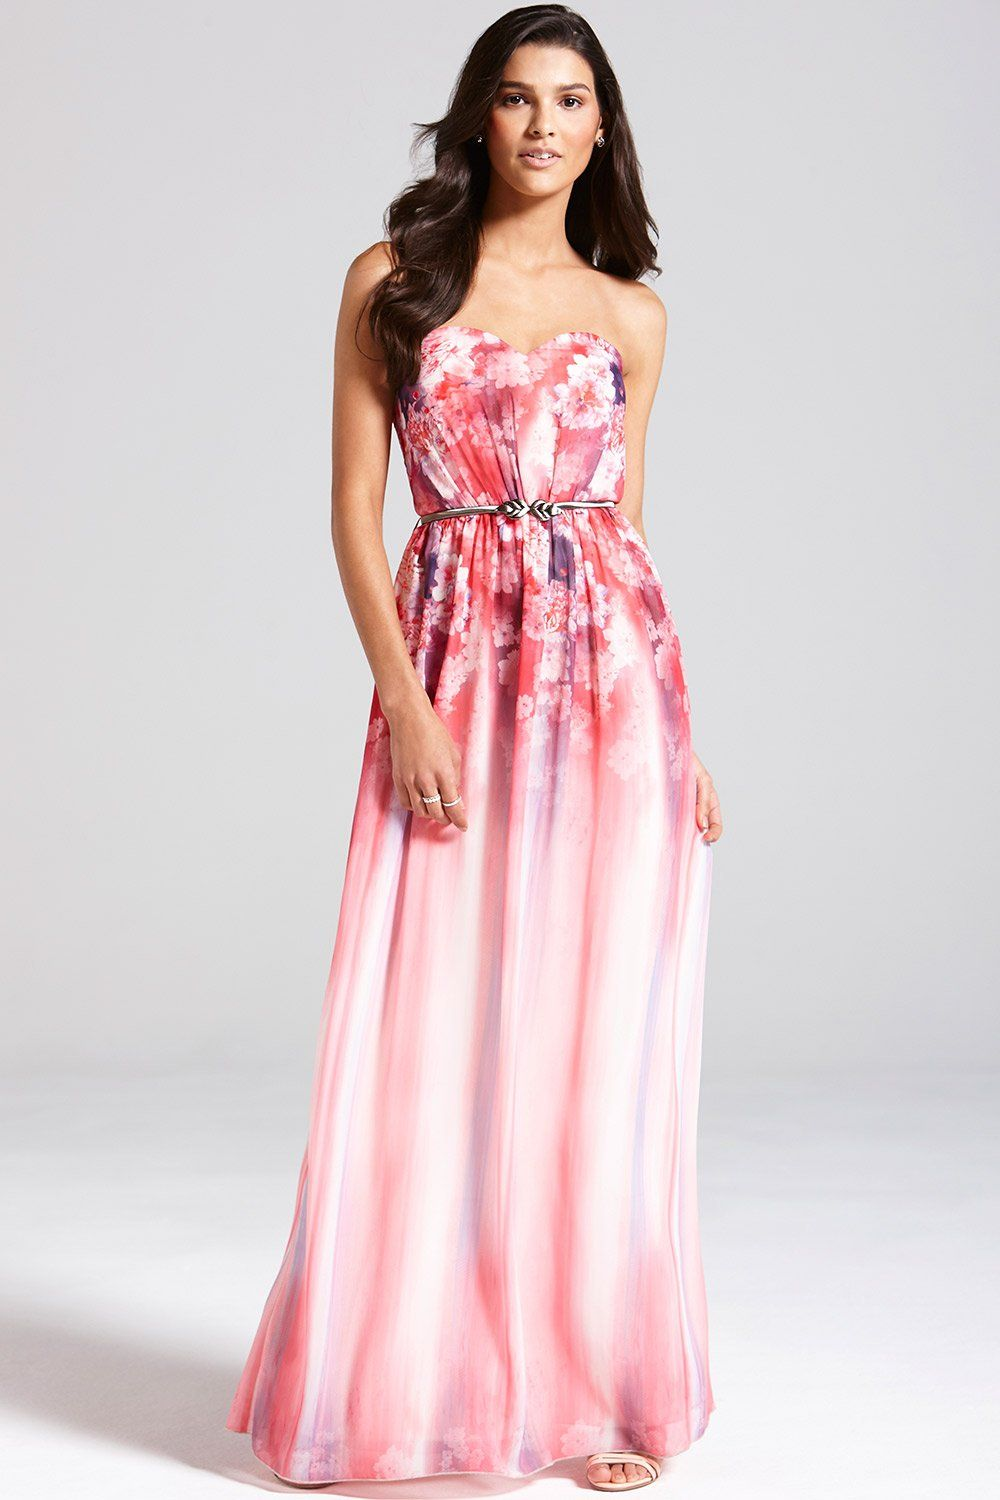 pink-maxi-dress - Pink Maxi Dress - Pinterest - Pink- Maxis and ...